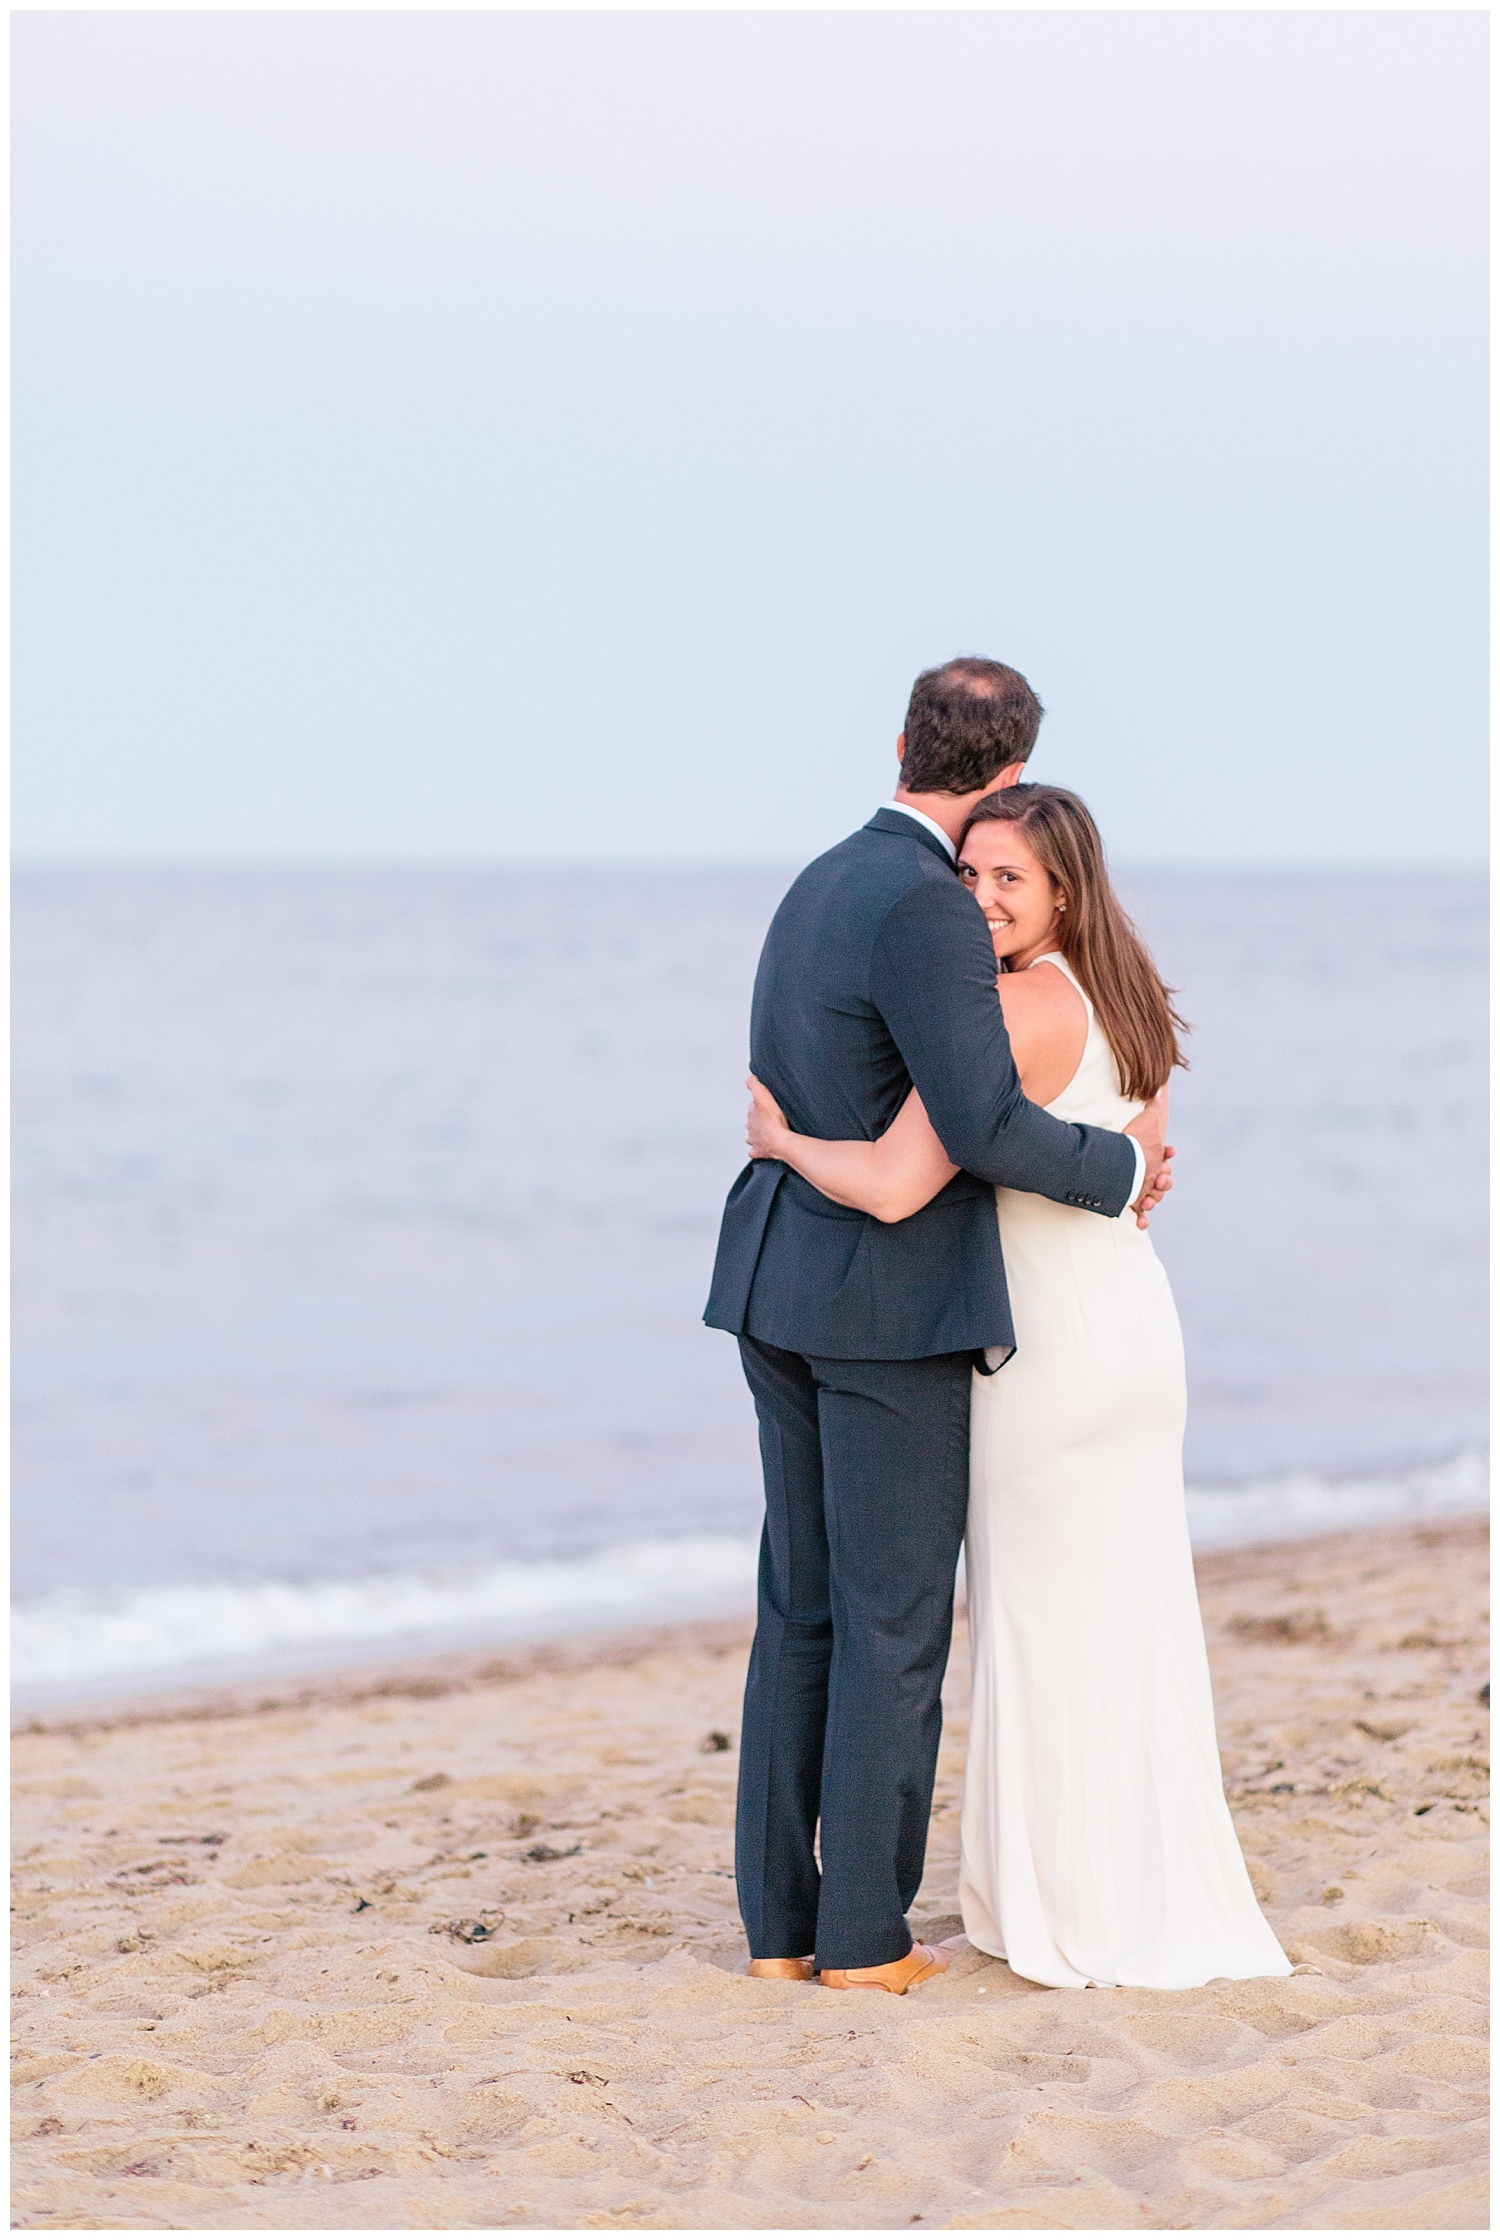 emily-belson-photography-nantucket-elopement-60.jpg